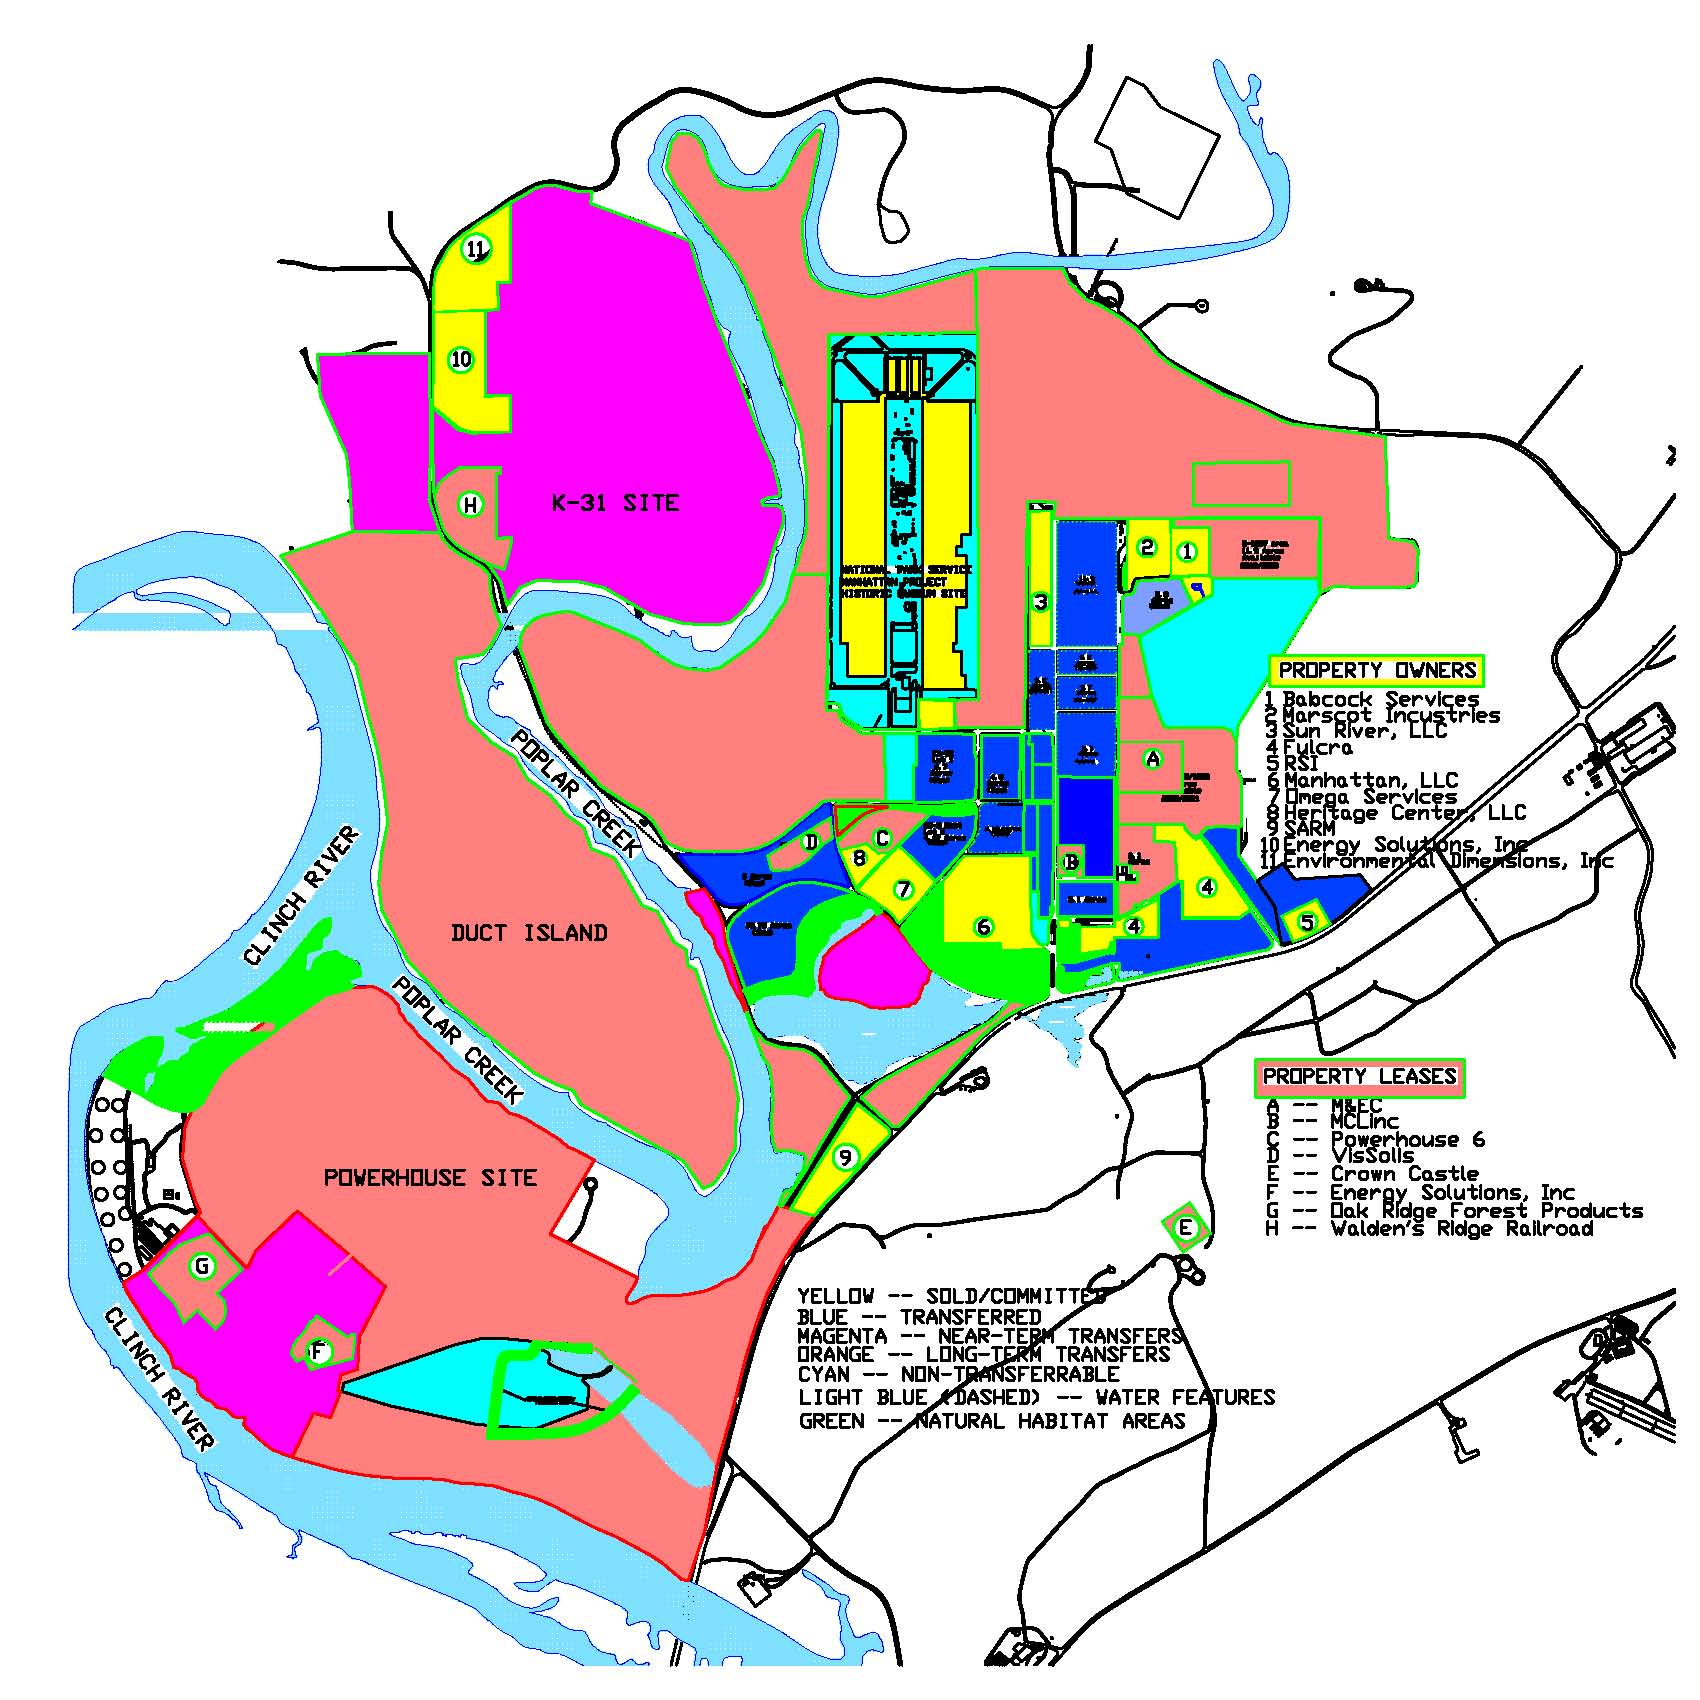 Web Site Map: Private Property Owners & Tenants